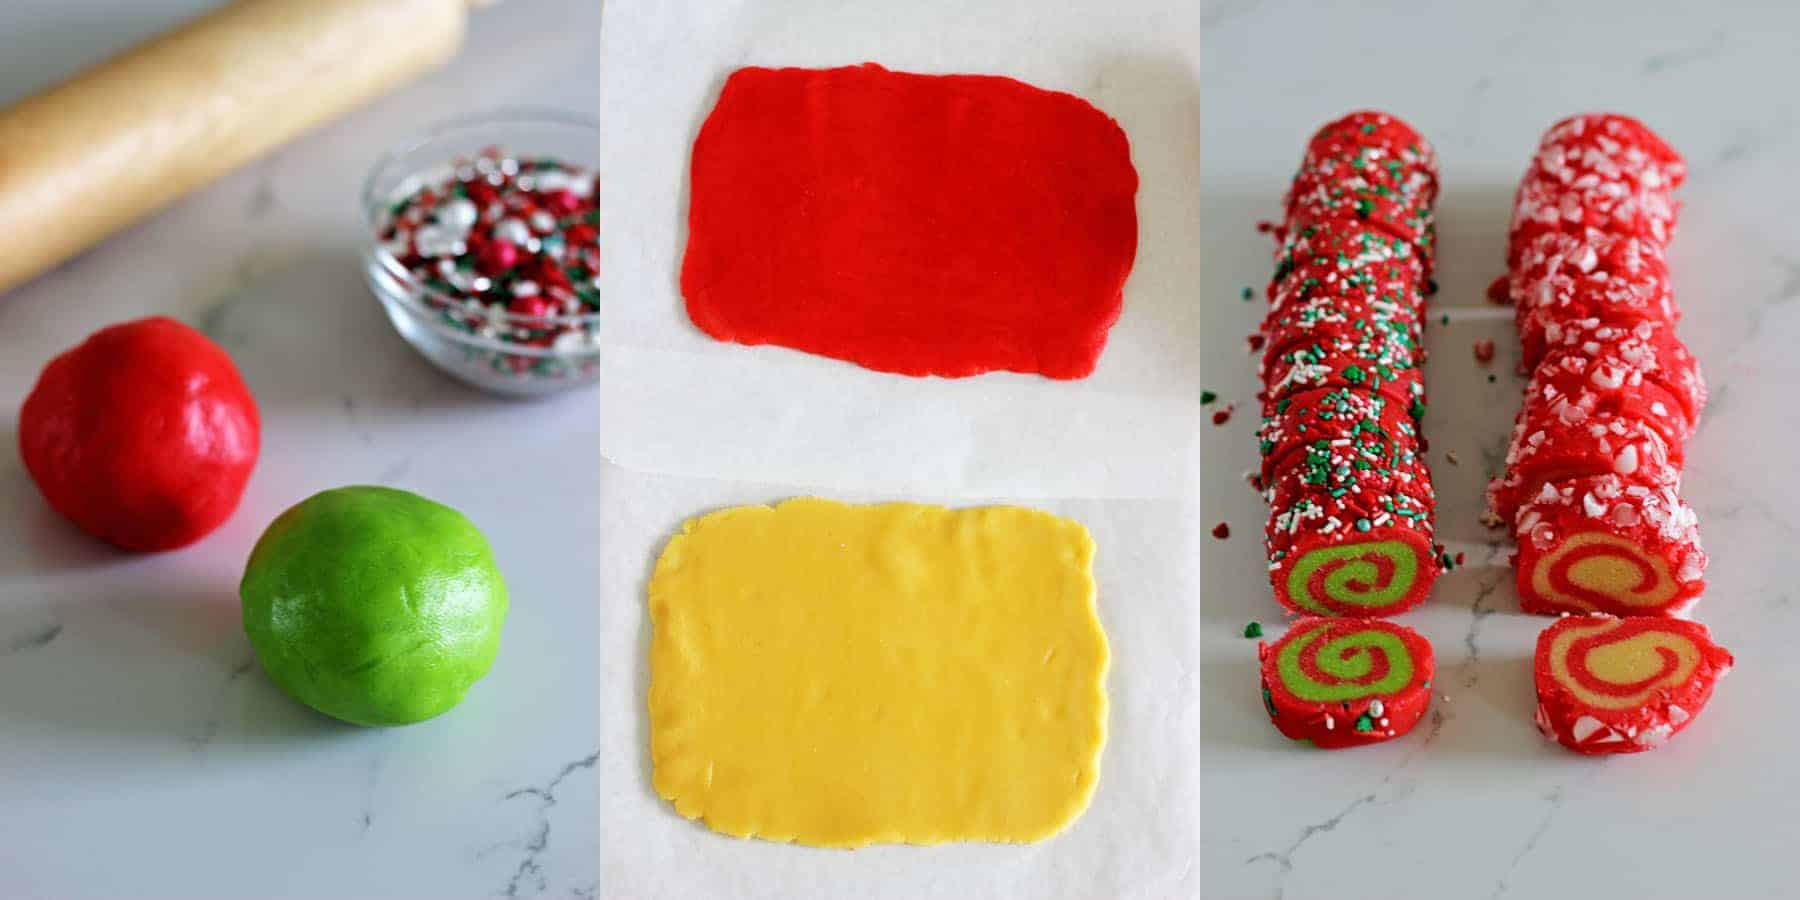 1 basic dough = 4 slice and bake Christmas cookie recipes! Christmas pinwheels, candy cane pinwheels, Christmas Spice, Orange, Cranberry & Pistachio! | thekiwicountrygirl.com